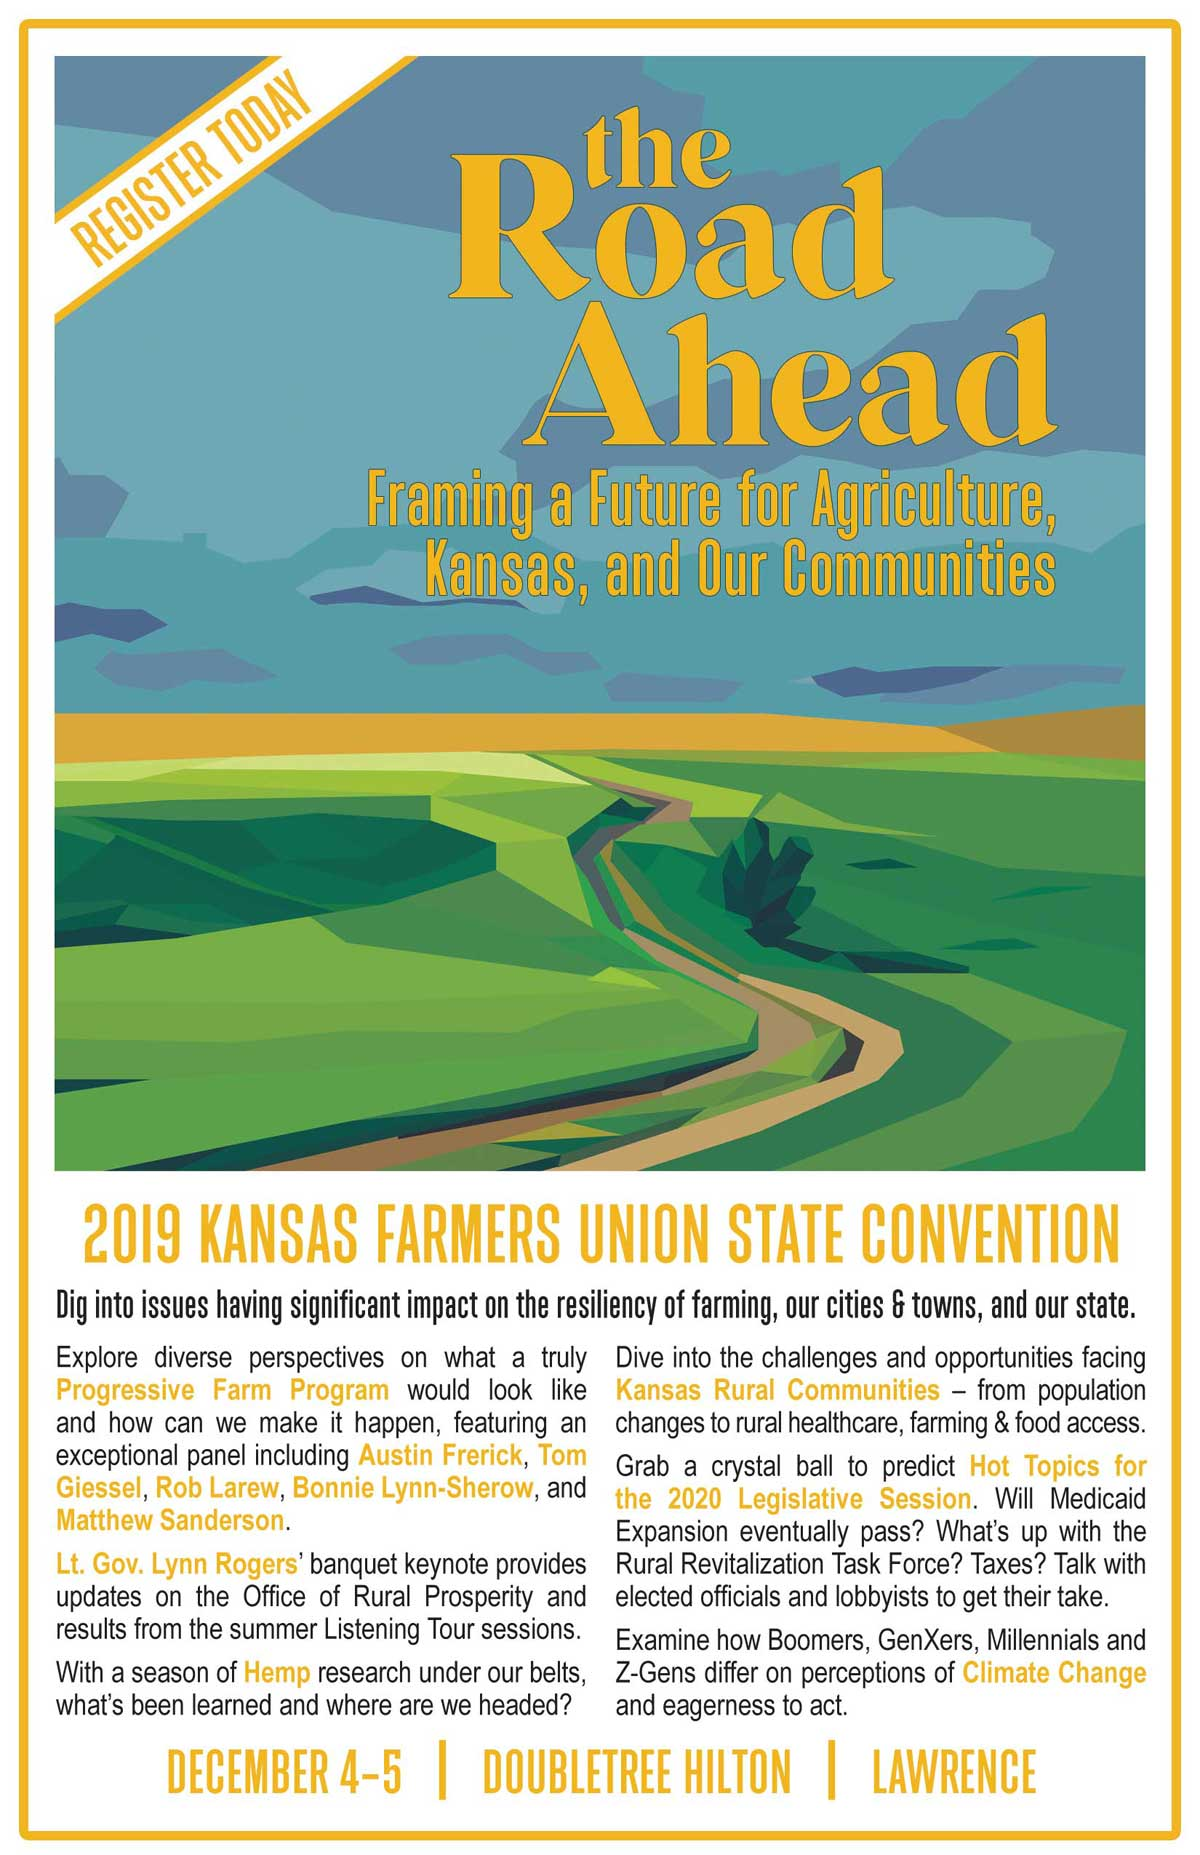 2019 KFU State Convention Postcard